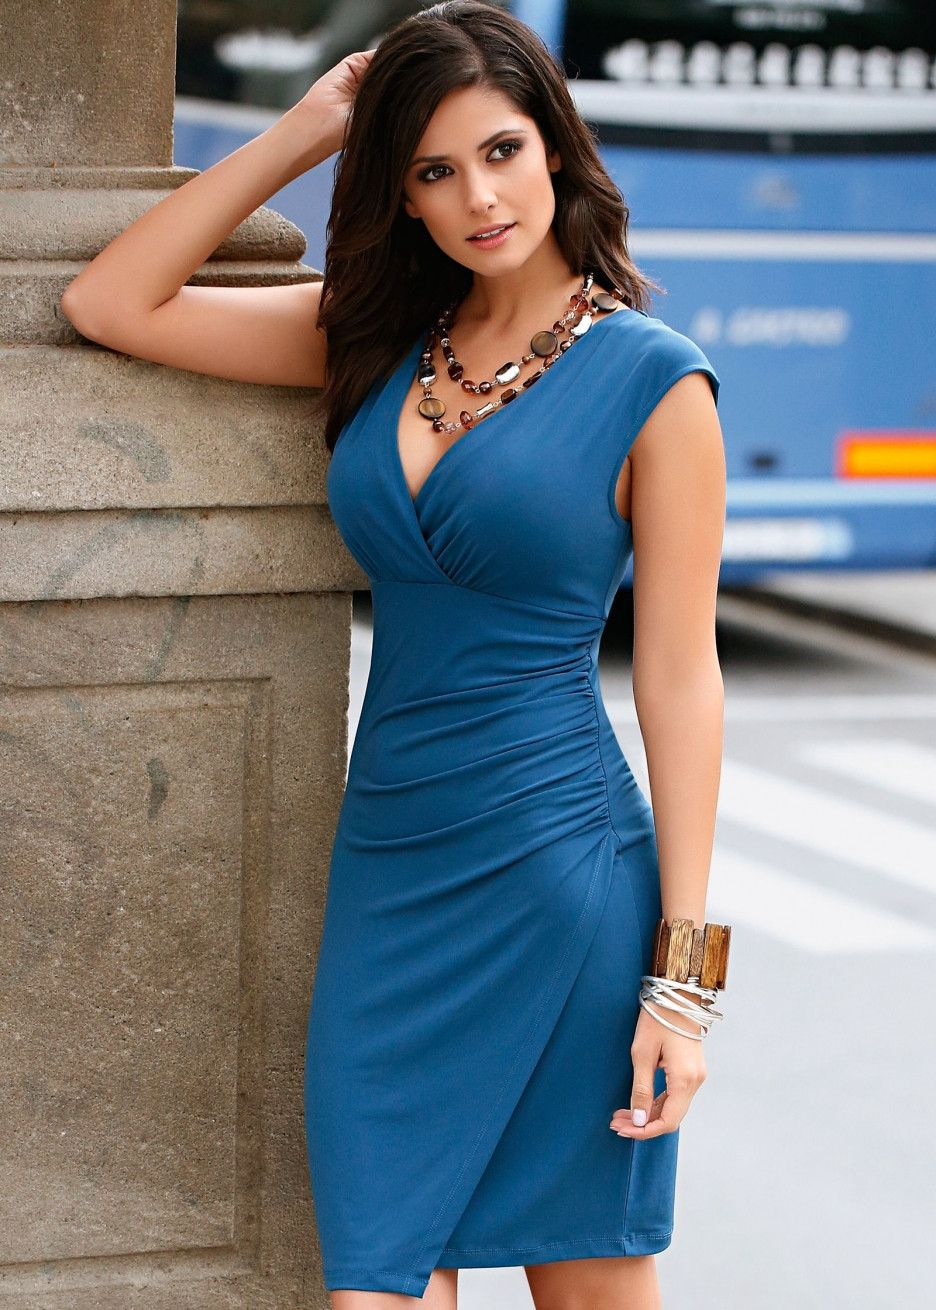 Chicksintightdress carla ossa mamitas pinterest dress skirt